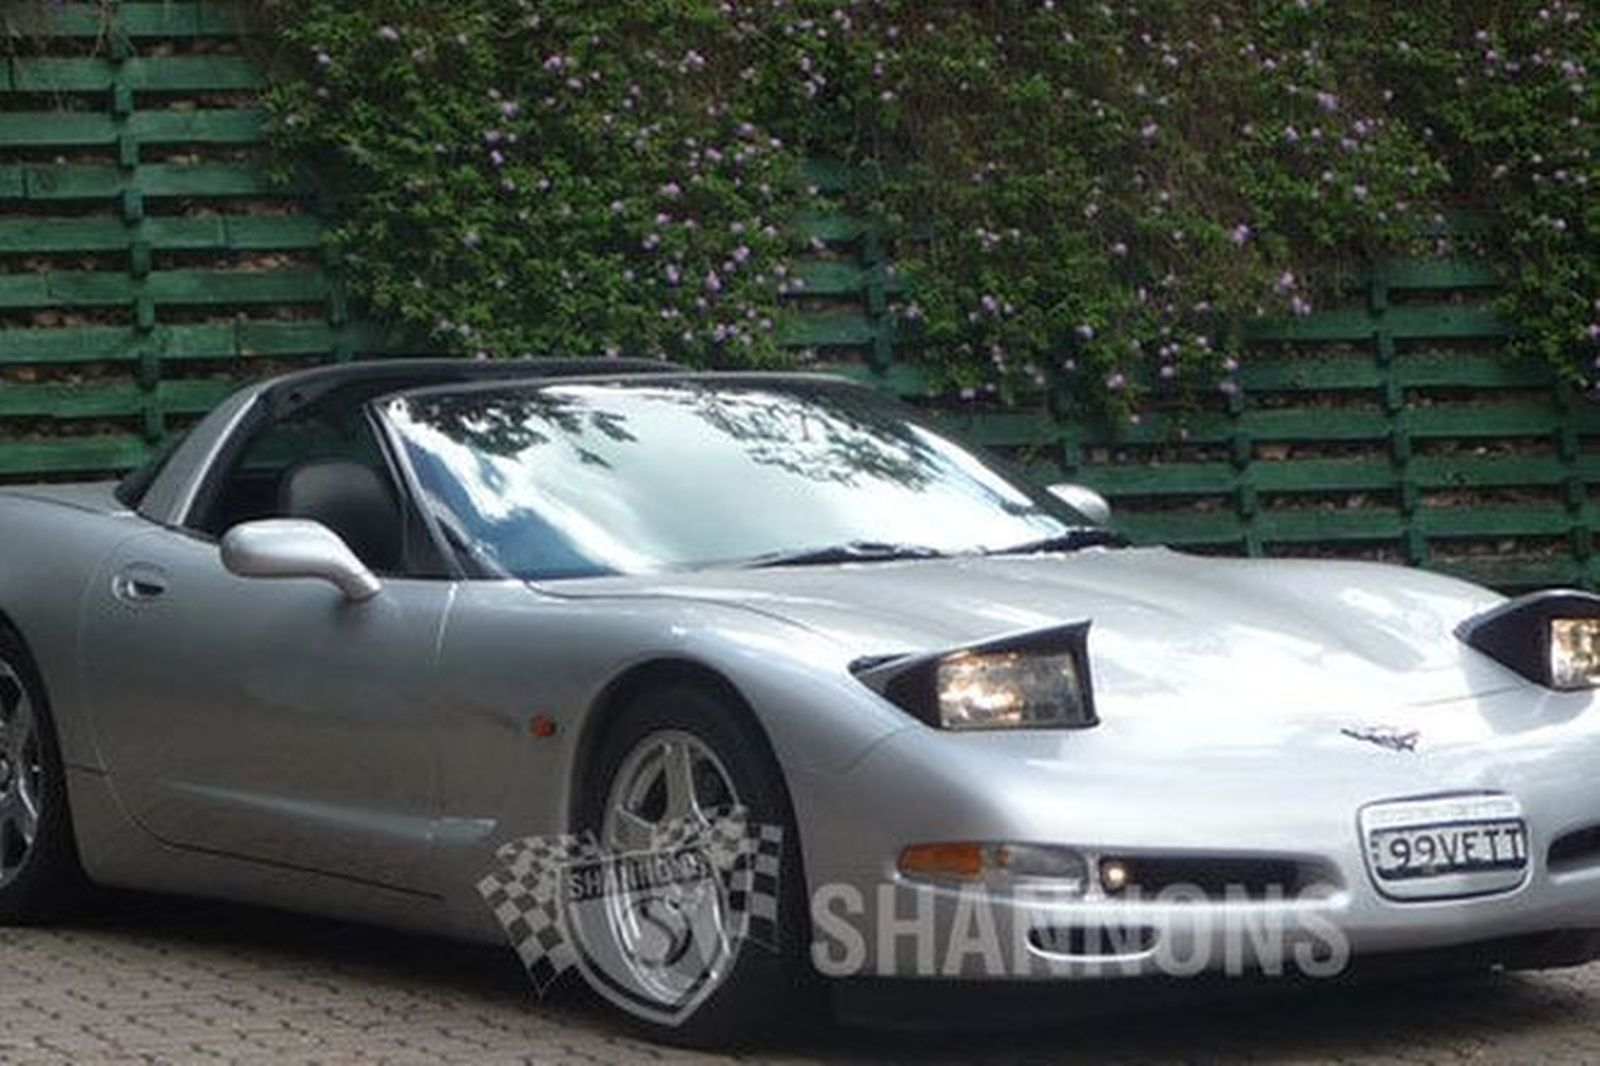 """How Much Will My Car Payment Be >> Chevrolet Corvette C5 """"Targa"""" Coupe (RHD) Auctions - Lot 25 - Shannons"""